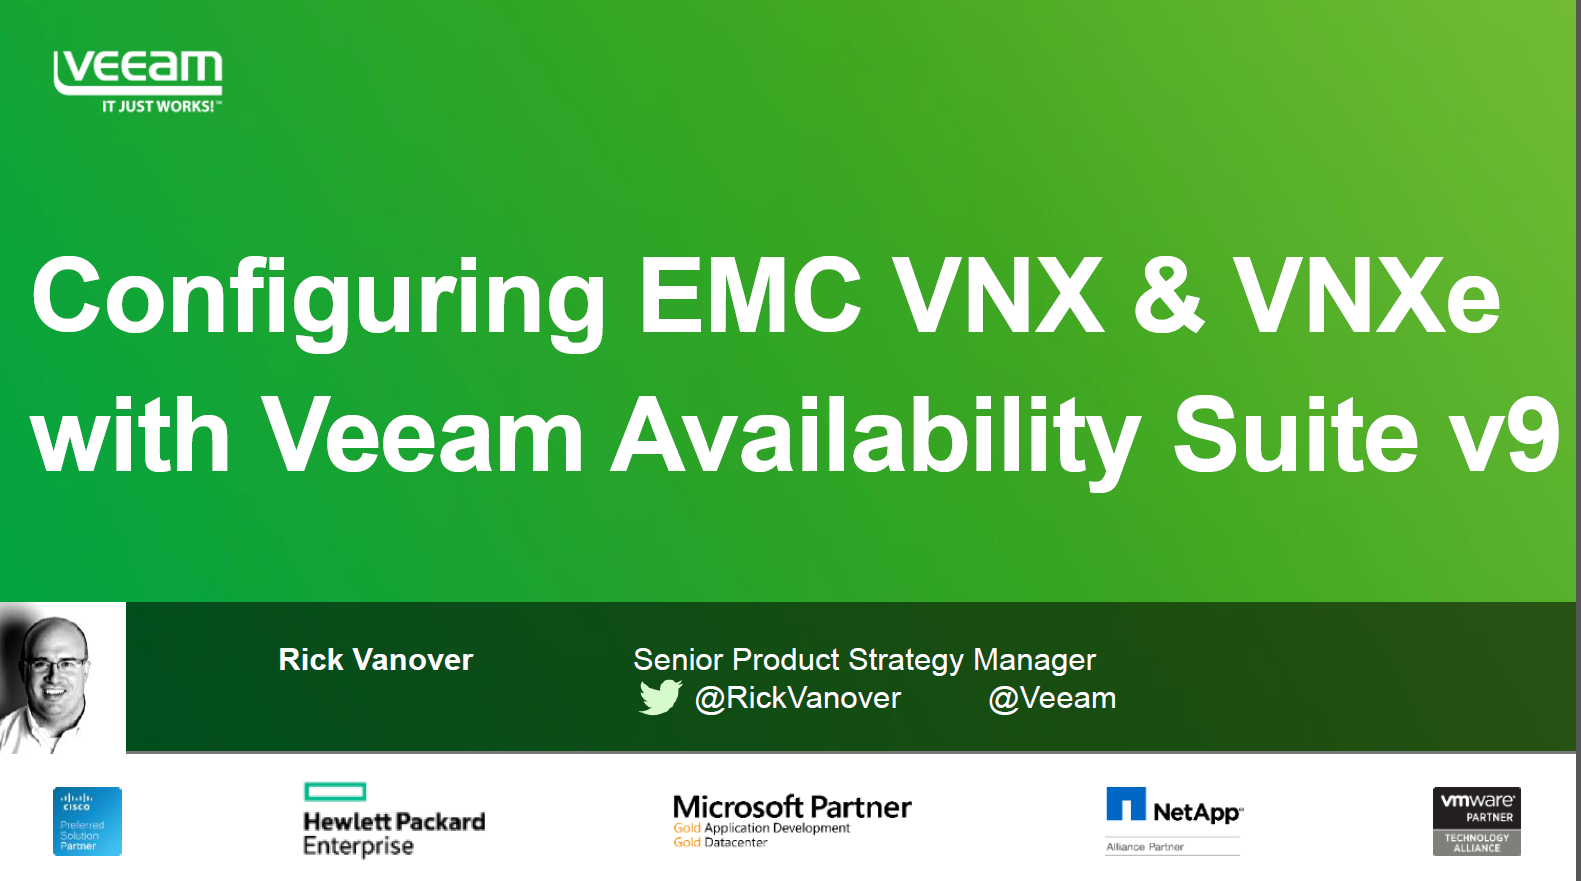 Configuring Dell EMC VNX and VNXe with Veeam